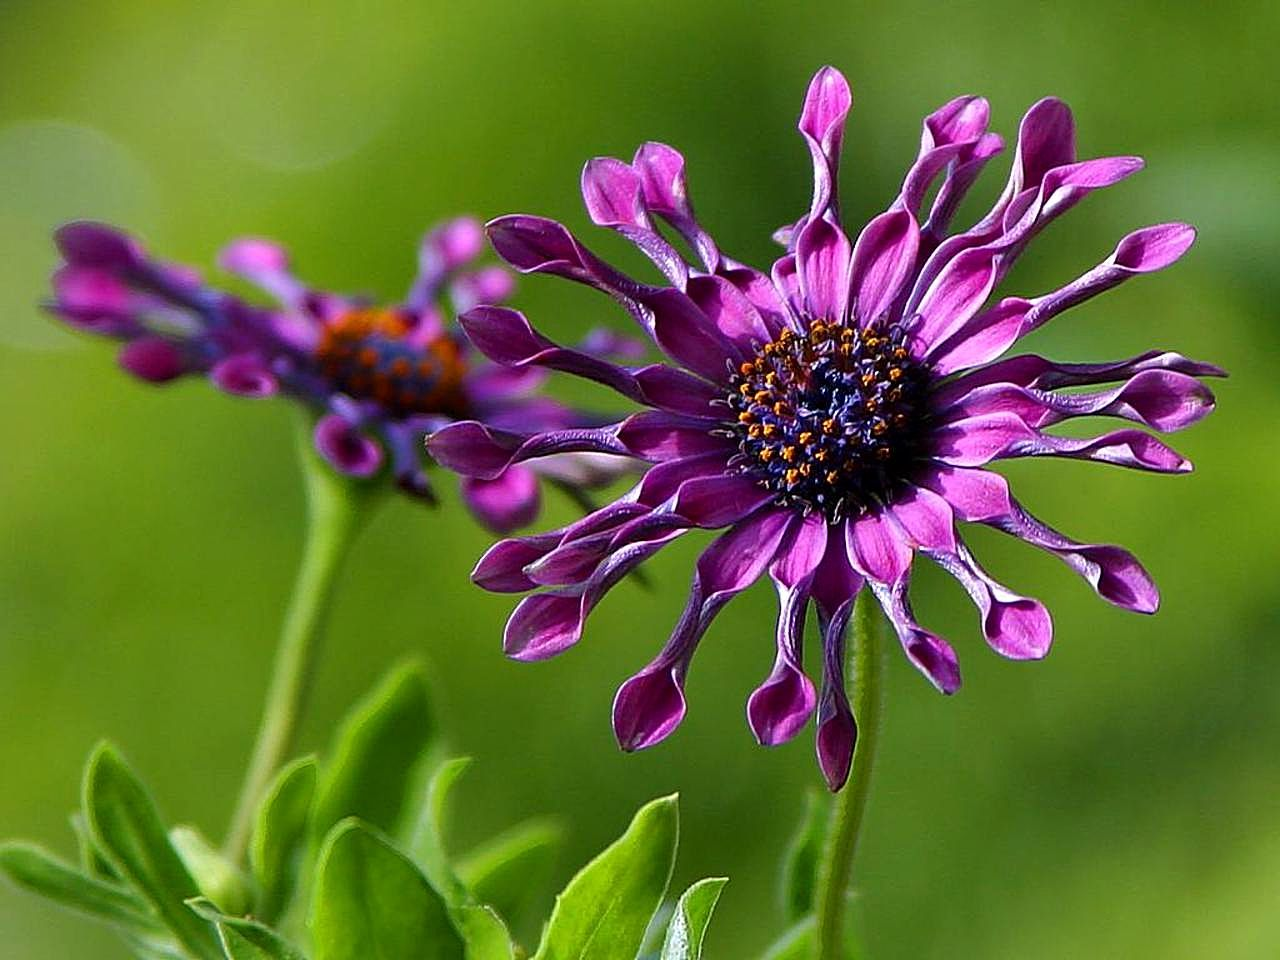 African daisies wallpapers high quality download free african daisies wallpapers izmirmasajfo